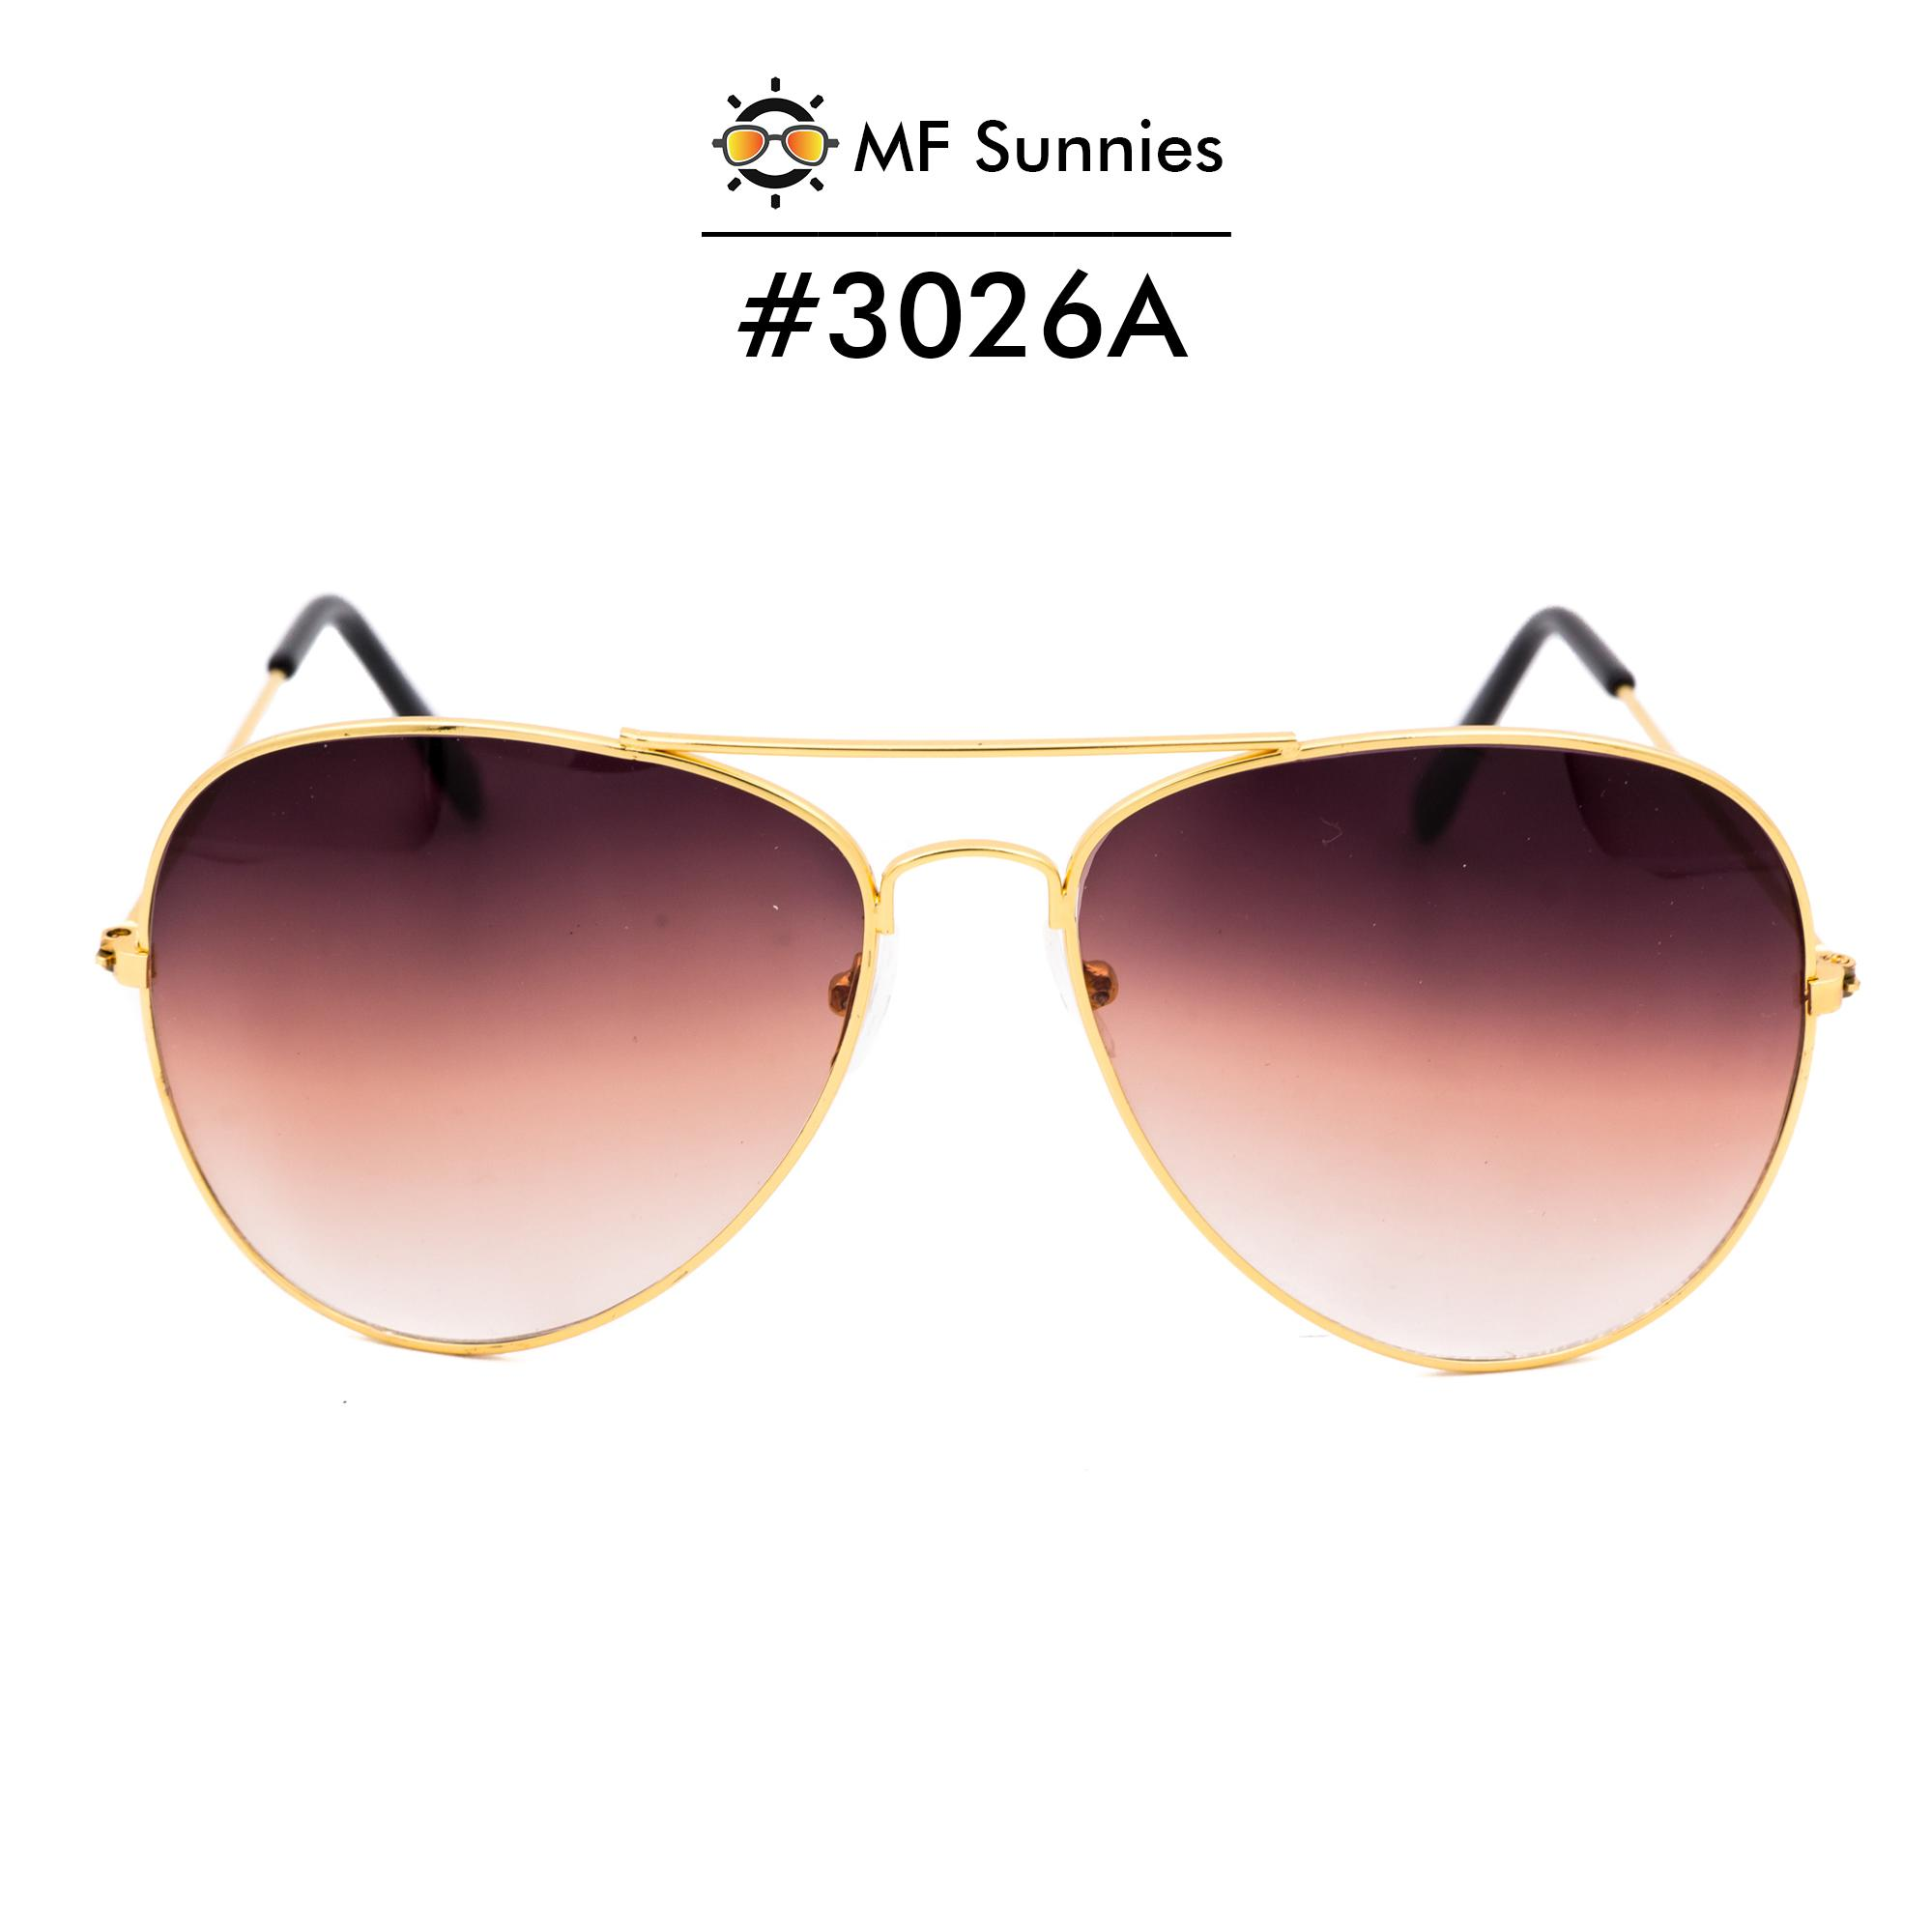 6bf76ce3cc4 MFSunnies Sunnies Classic Aviator Gradient lens Metal Frame Fashion eyewear  Gradient Brown  3026A